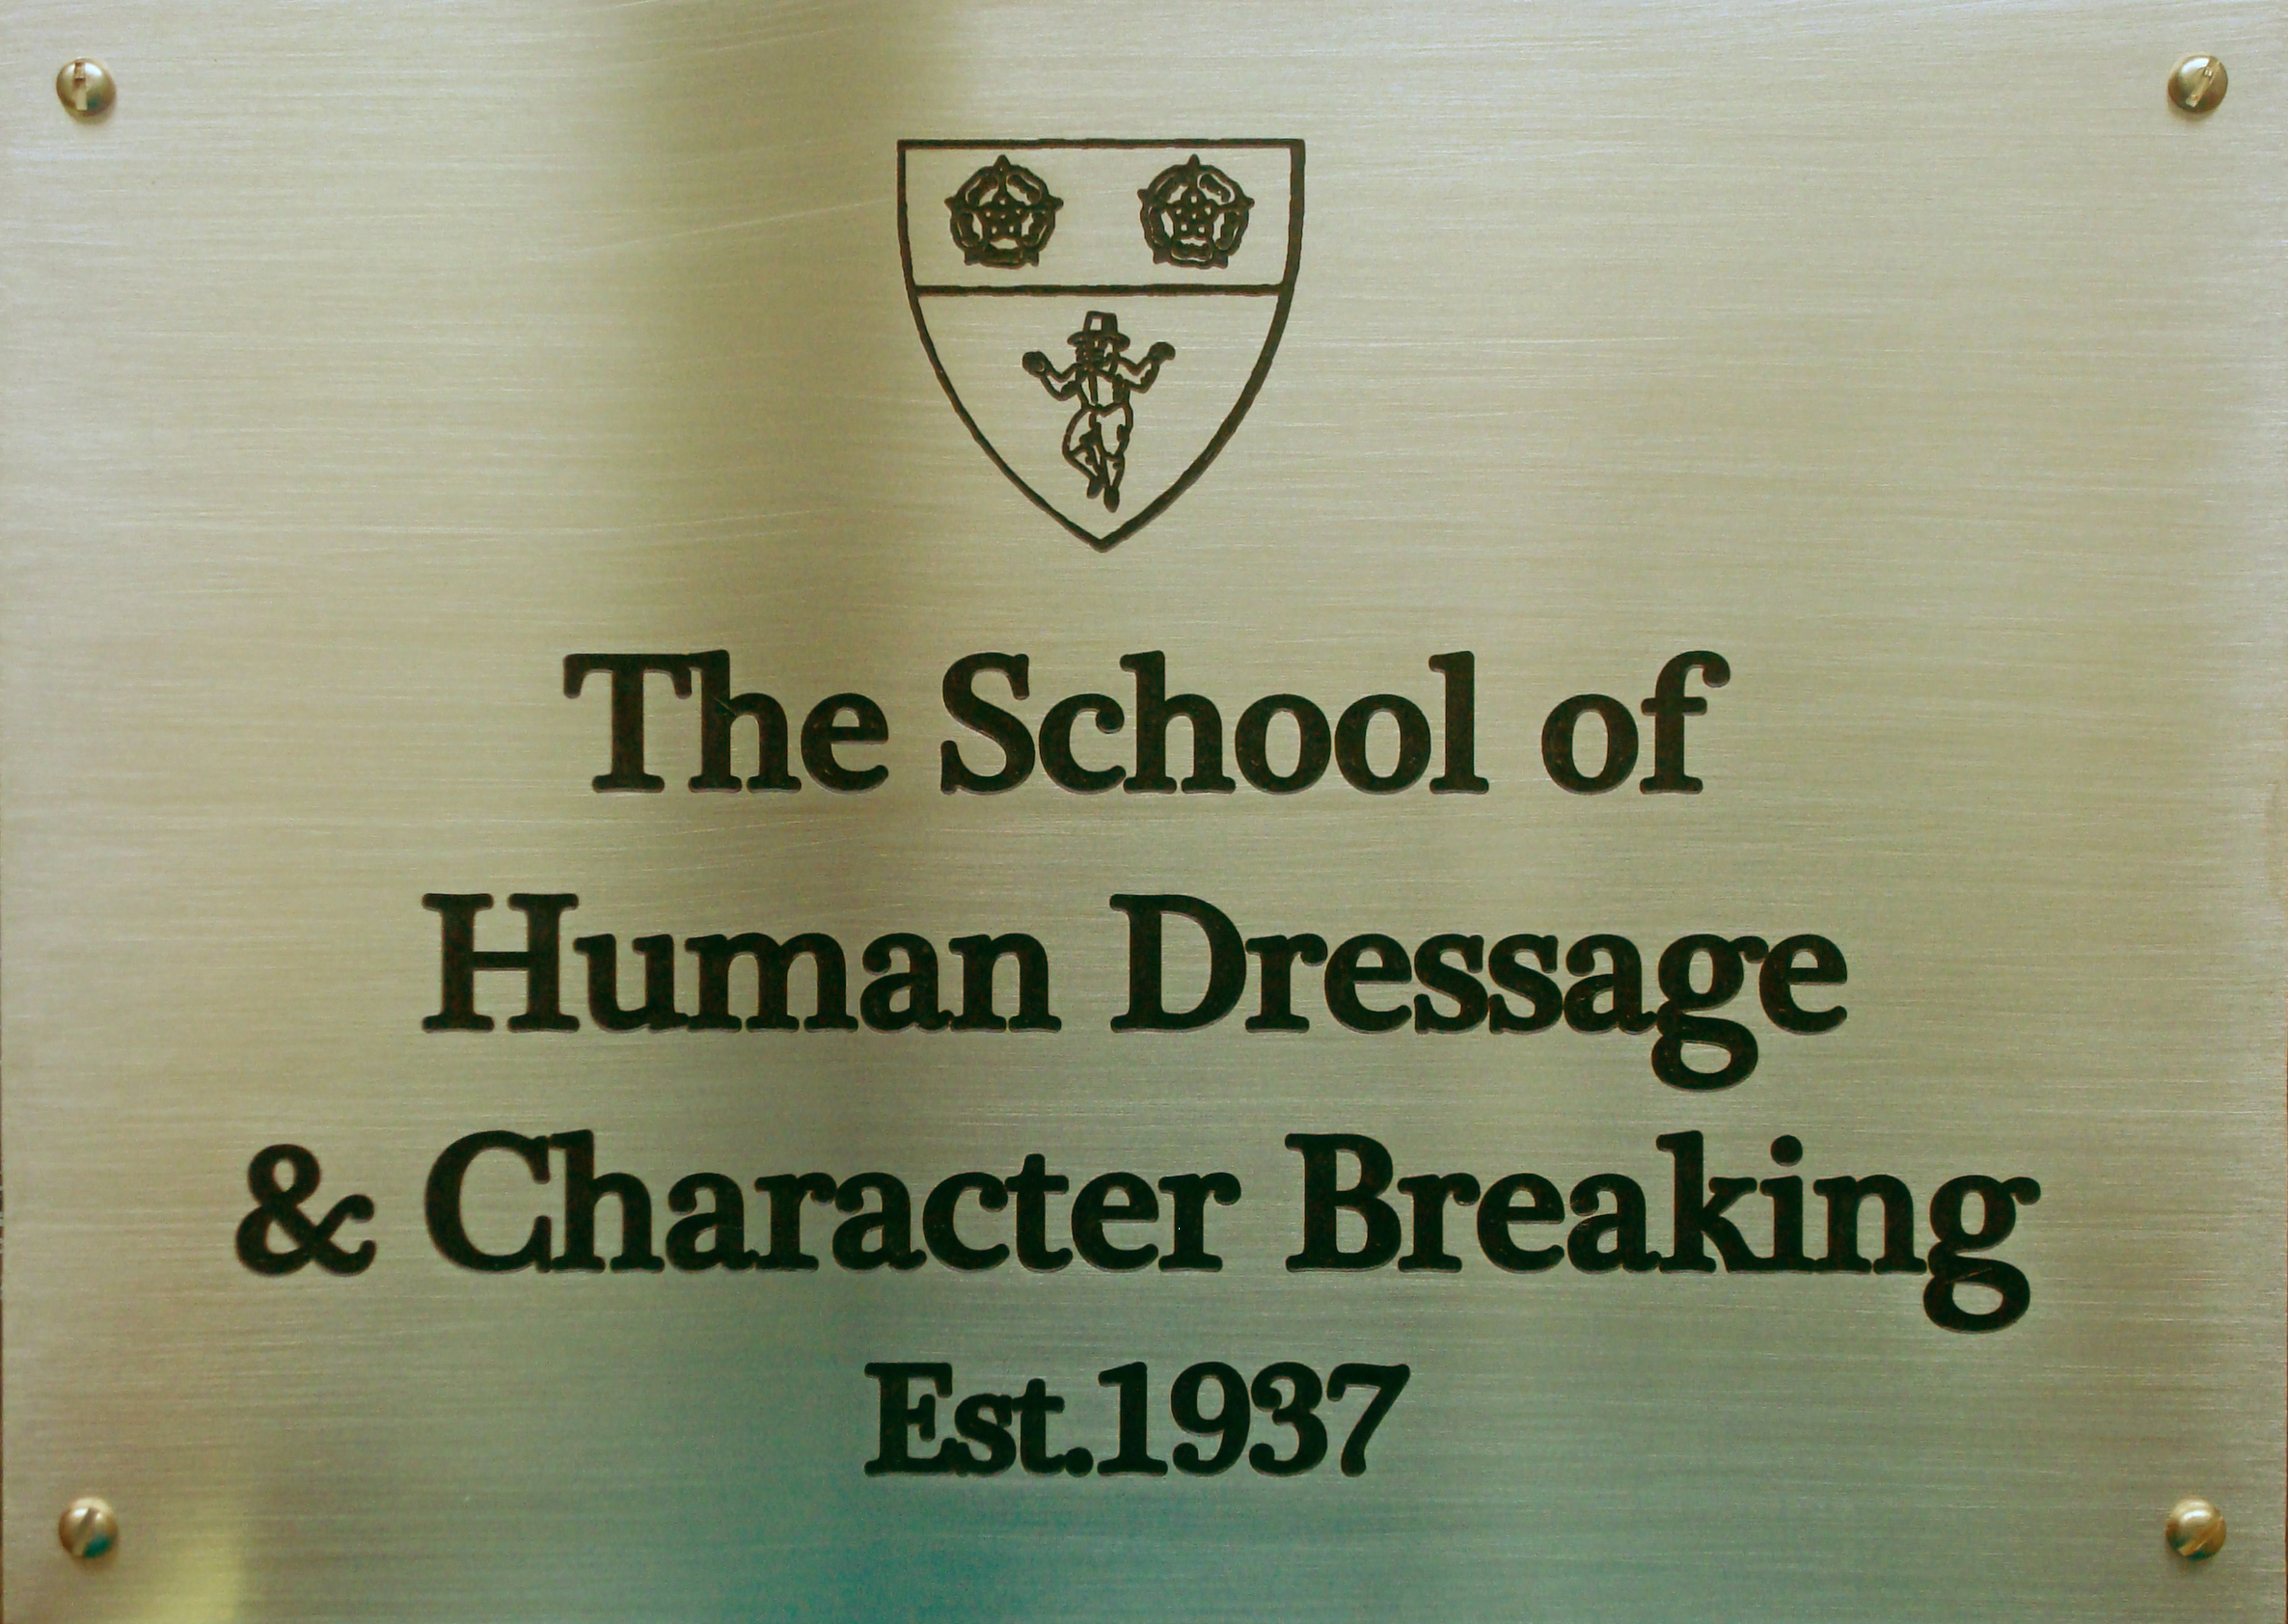 The School of Human Dressage and Character Breaking (detail)